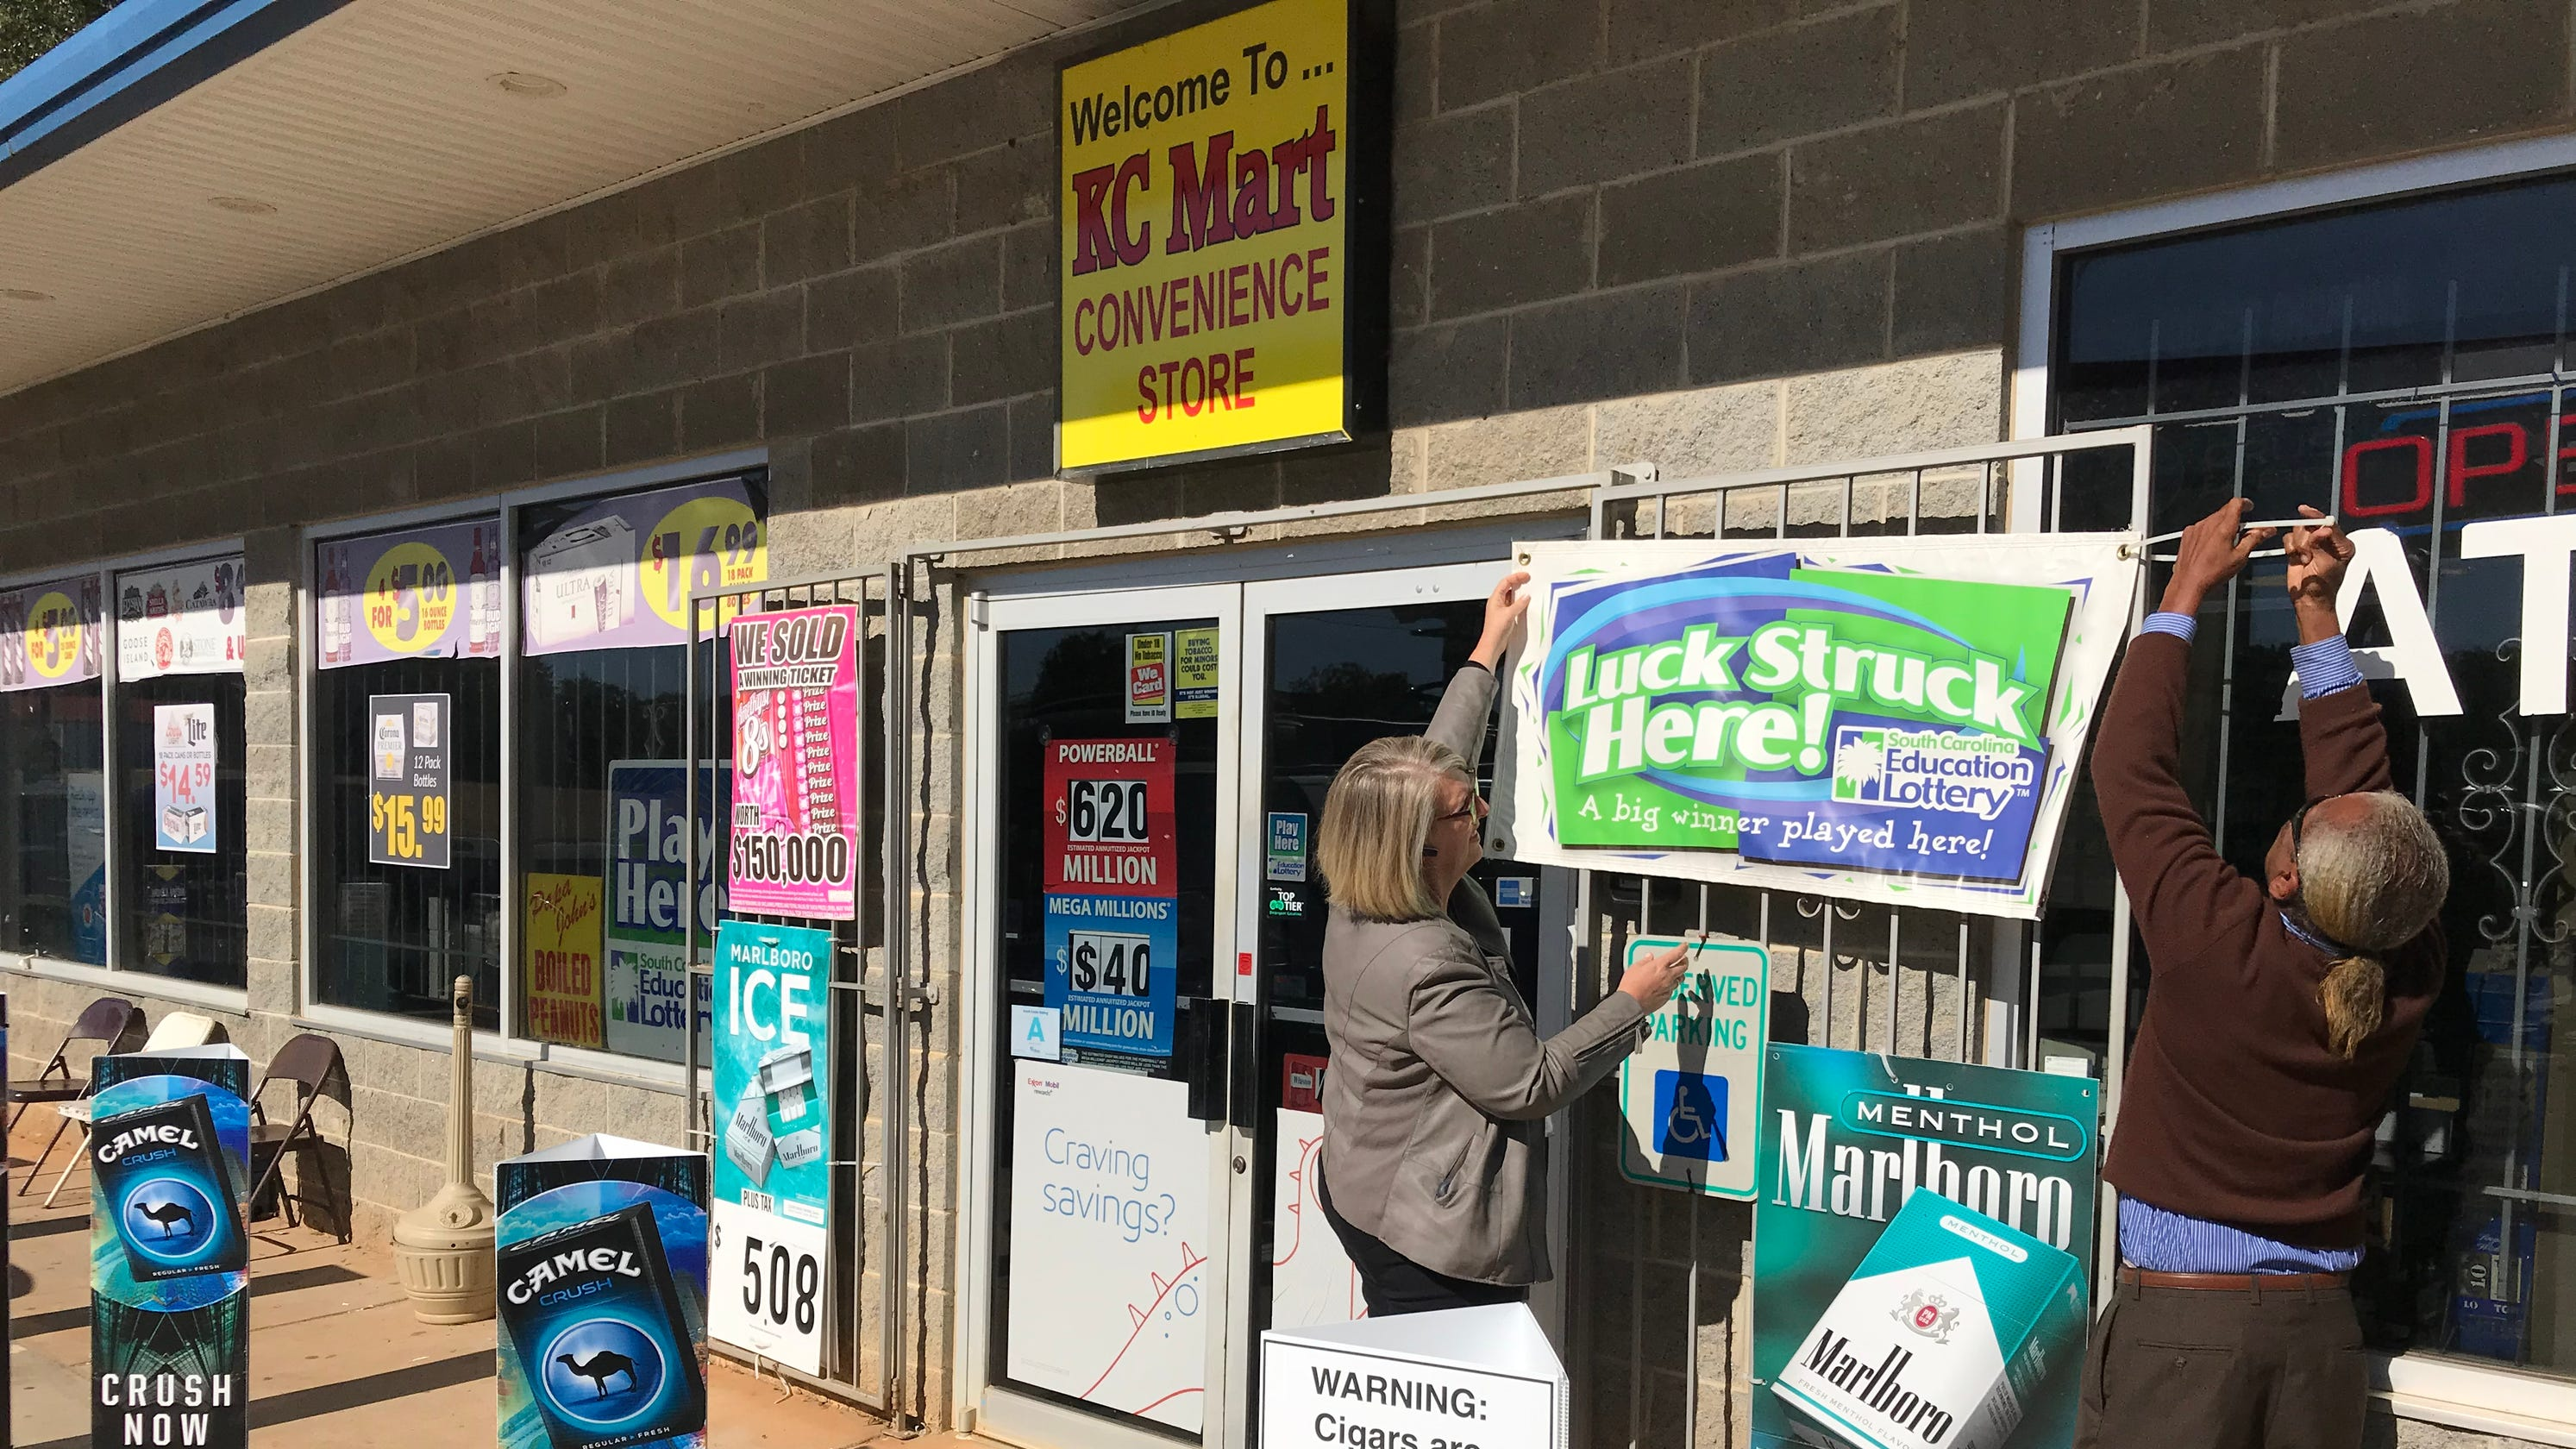 South Carolina convenience store sold $1 5 billion Mega Millions